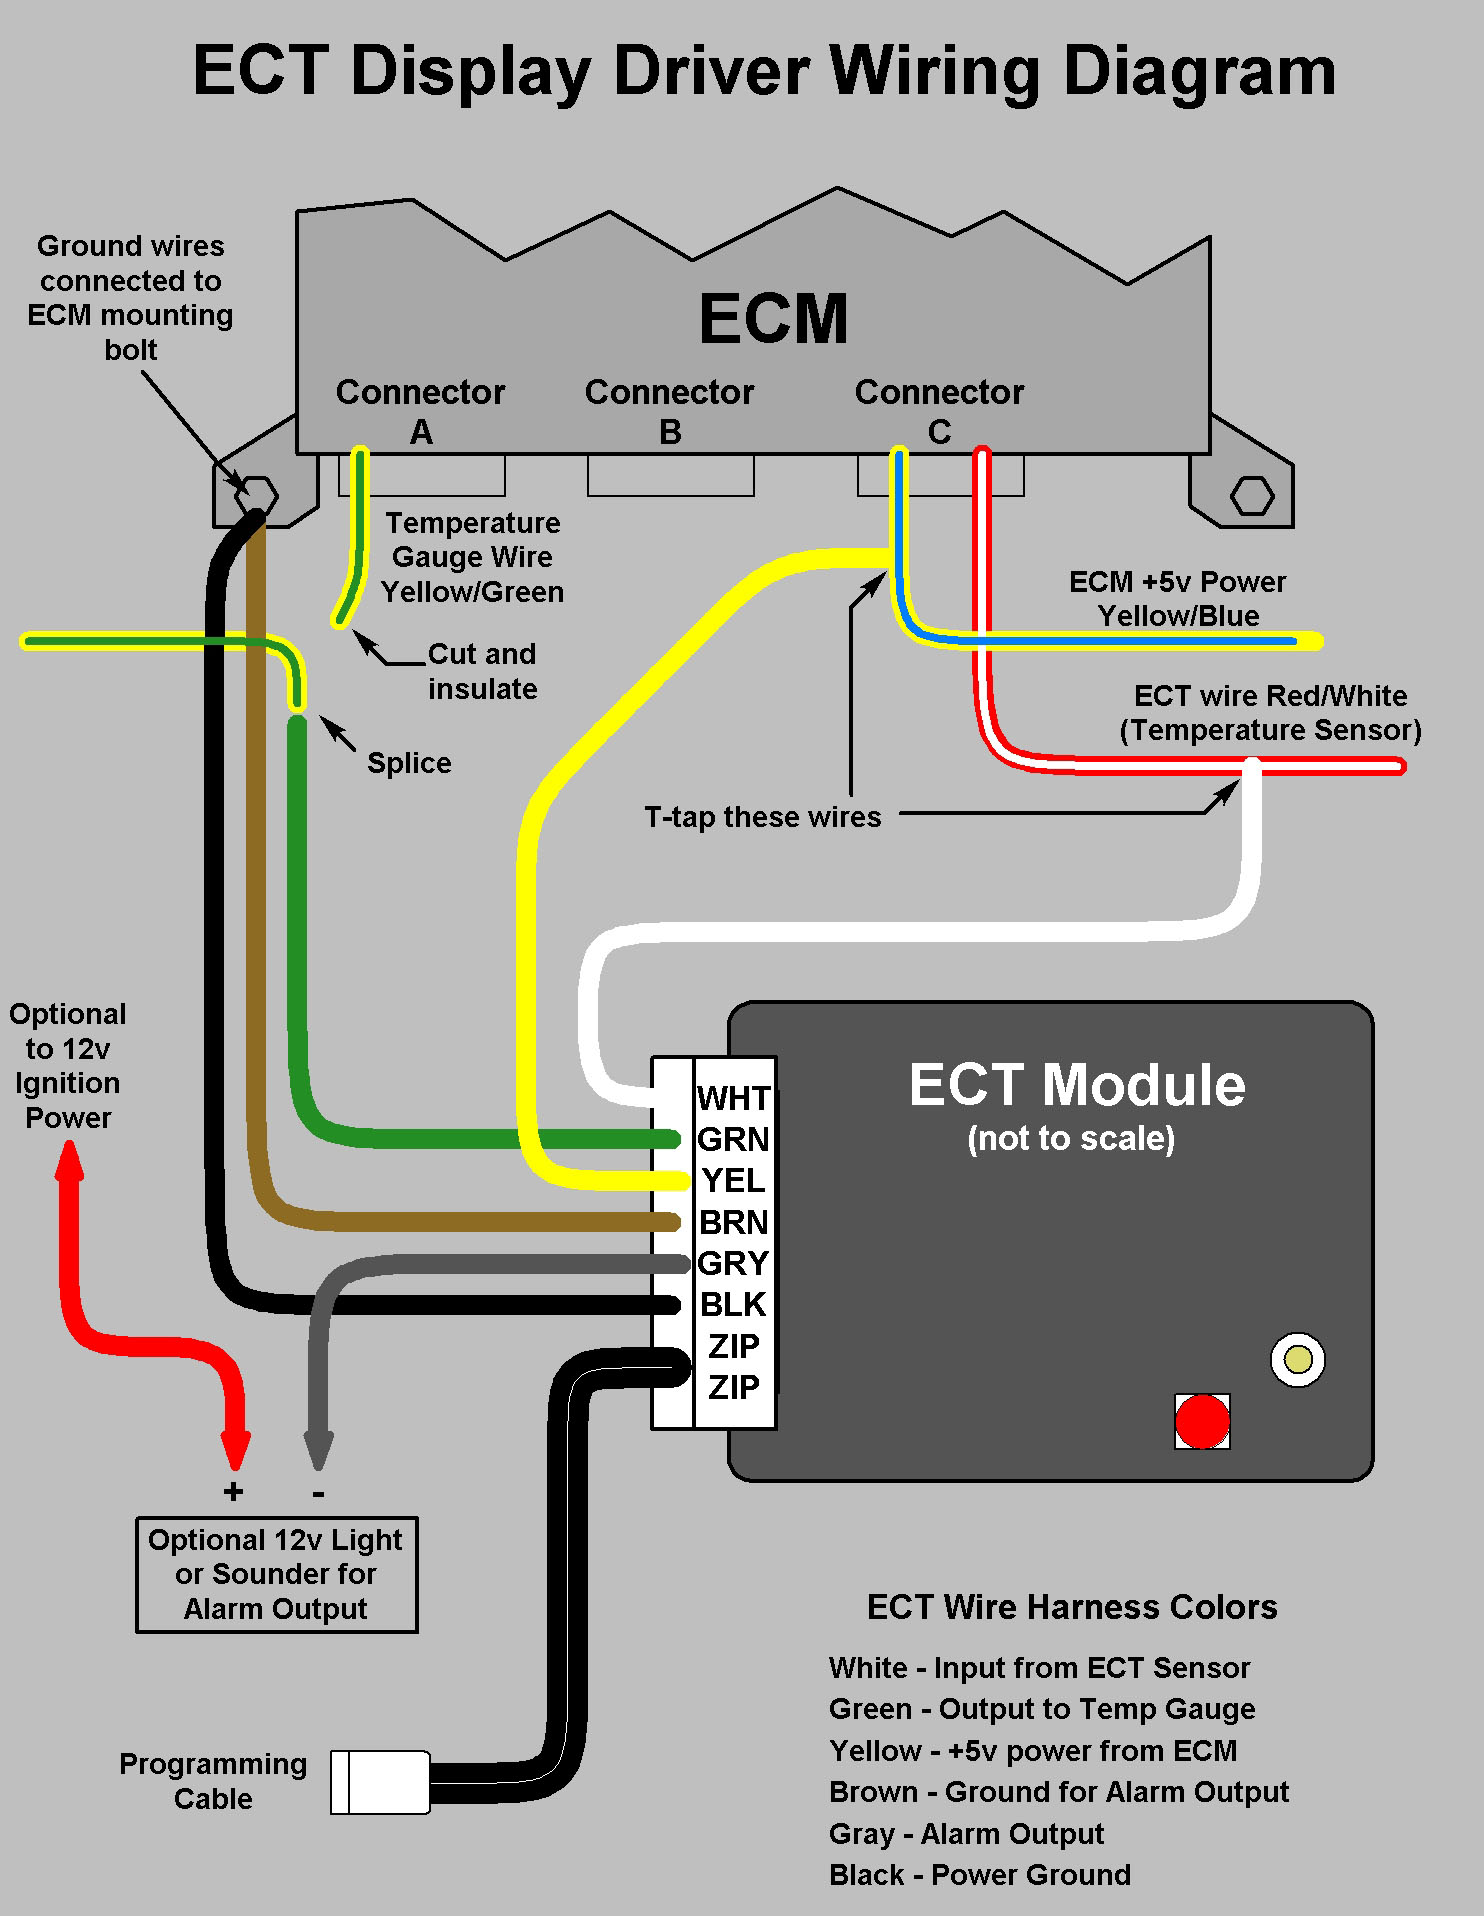 ECT wiring diagram aem ems 4 wiring diagram aem ems fox body mustangs \u2022 free wiring ems stinger wiring diagram at crackthecode.co